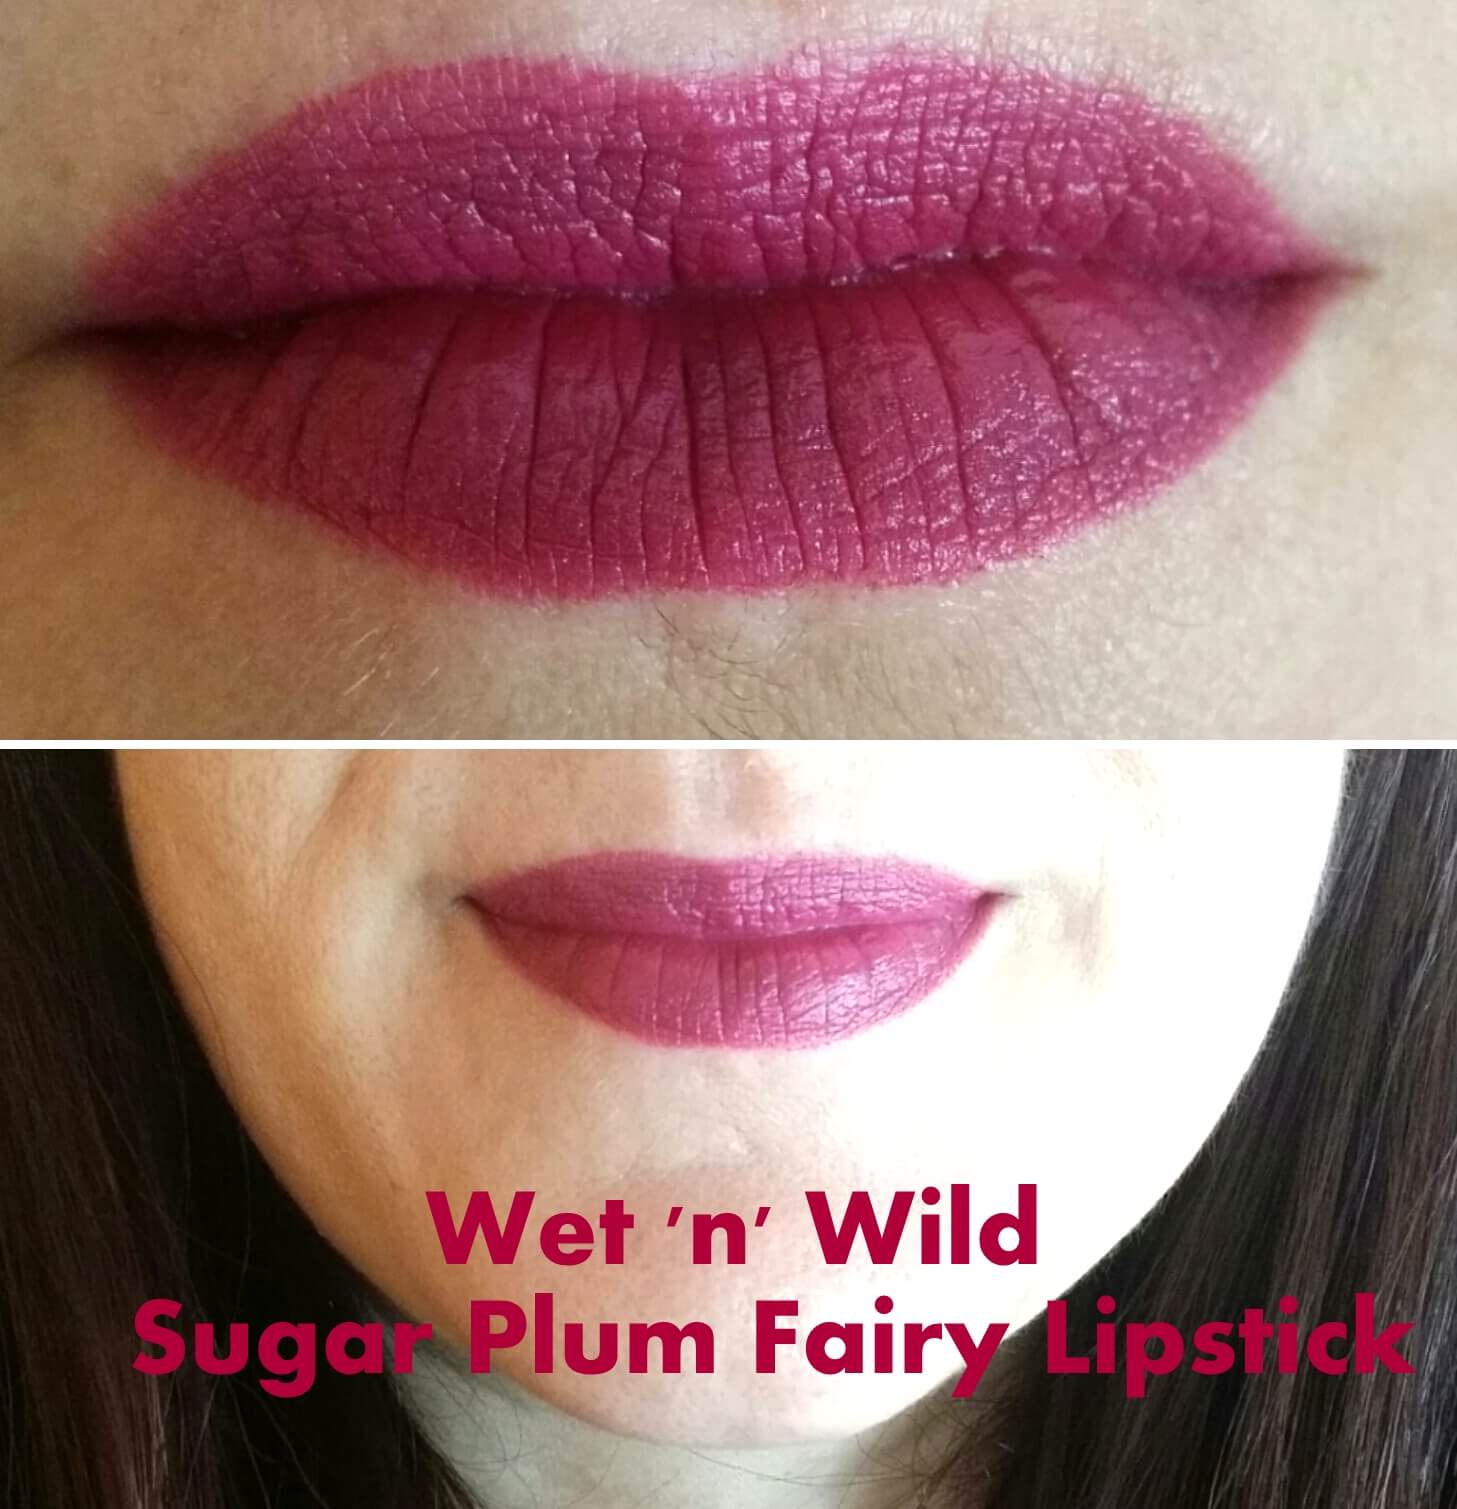 Favourite Lipstick at the moment - Wet 'n' Wild Sugar Plum Fairy ...